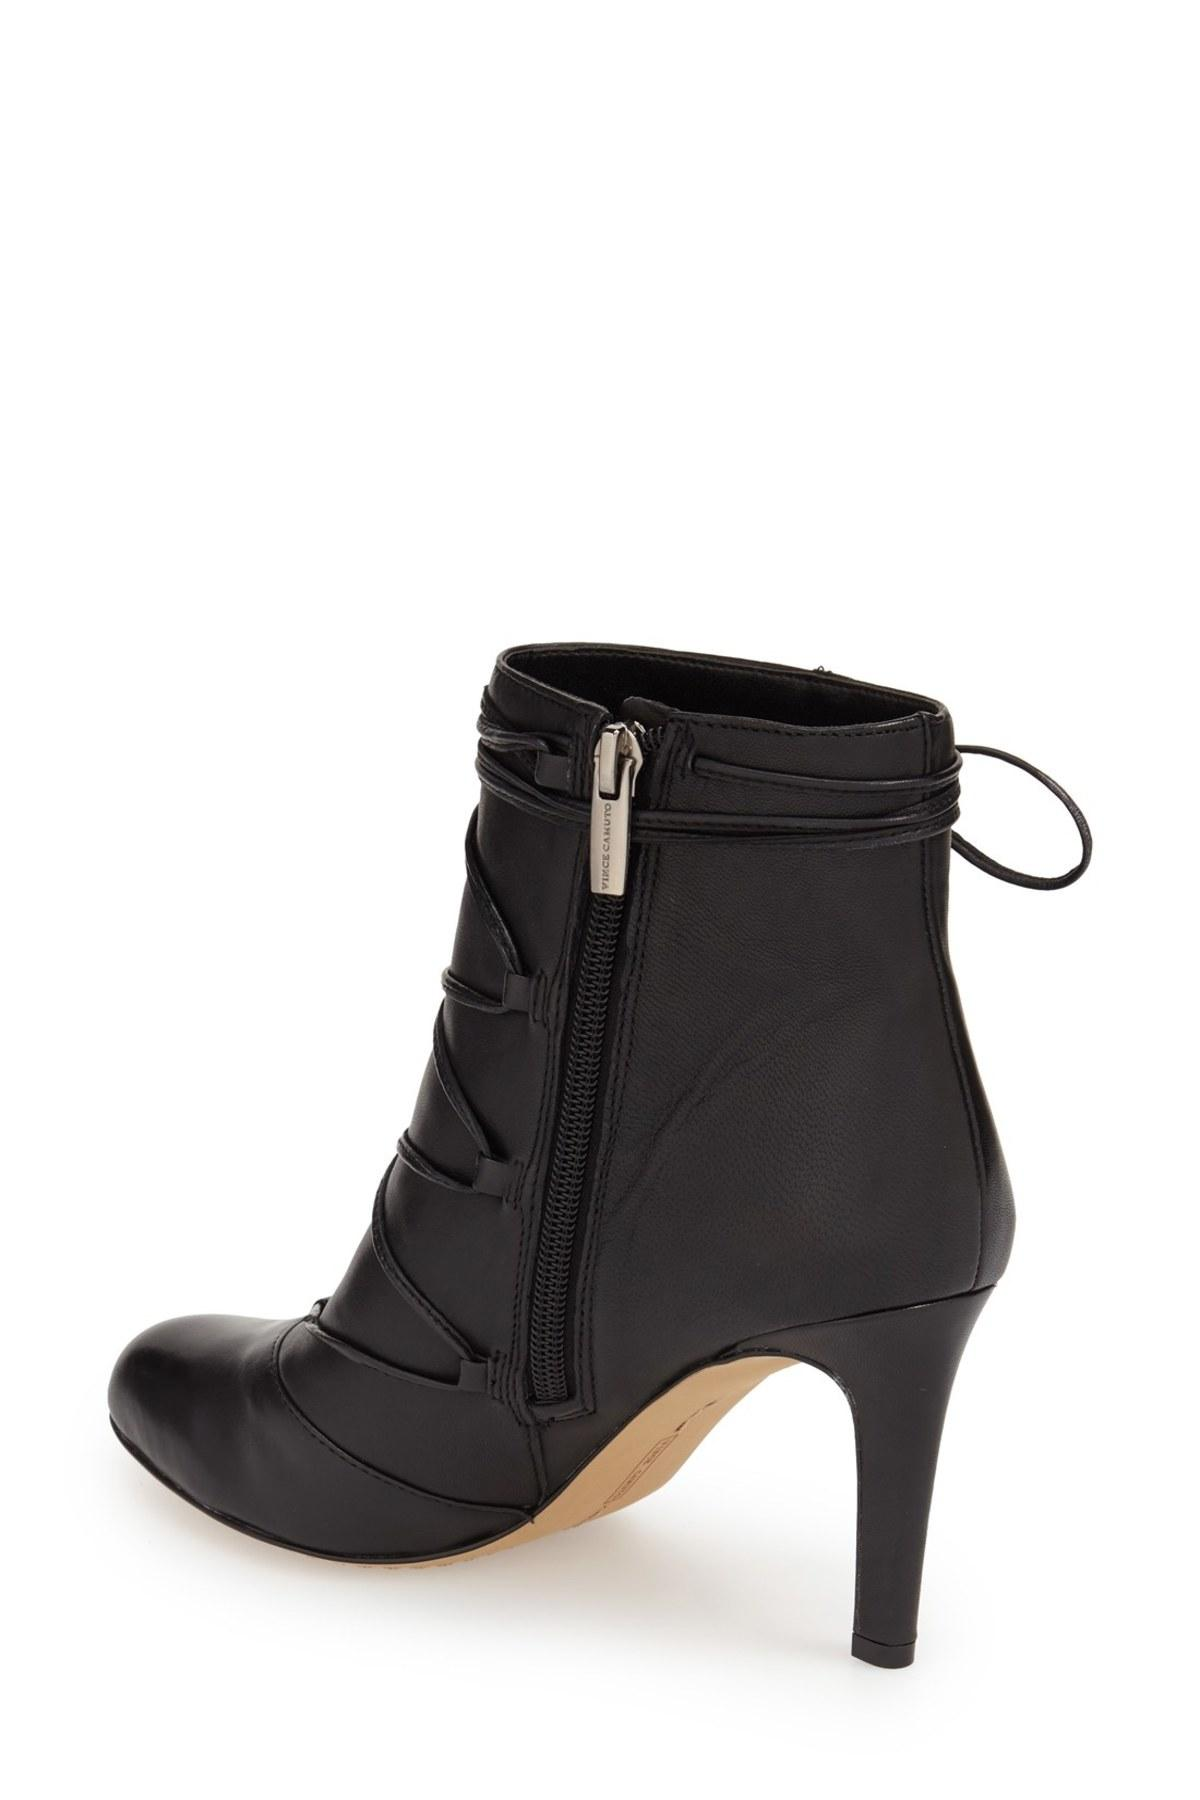 Vince Camuto Shoes True To Size